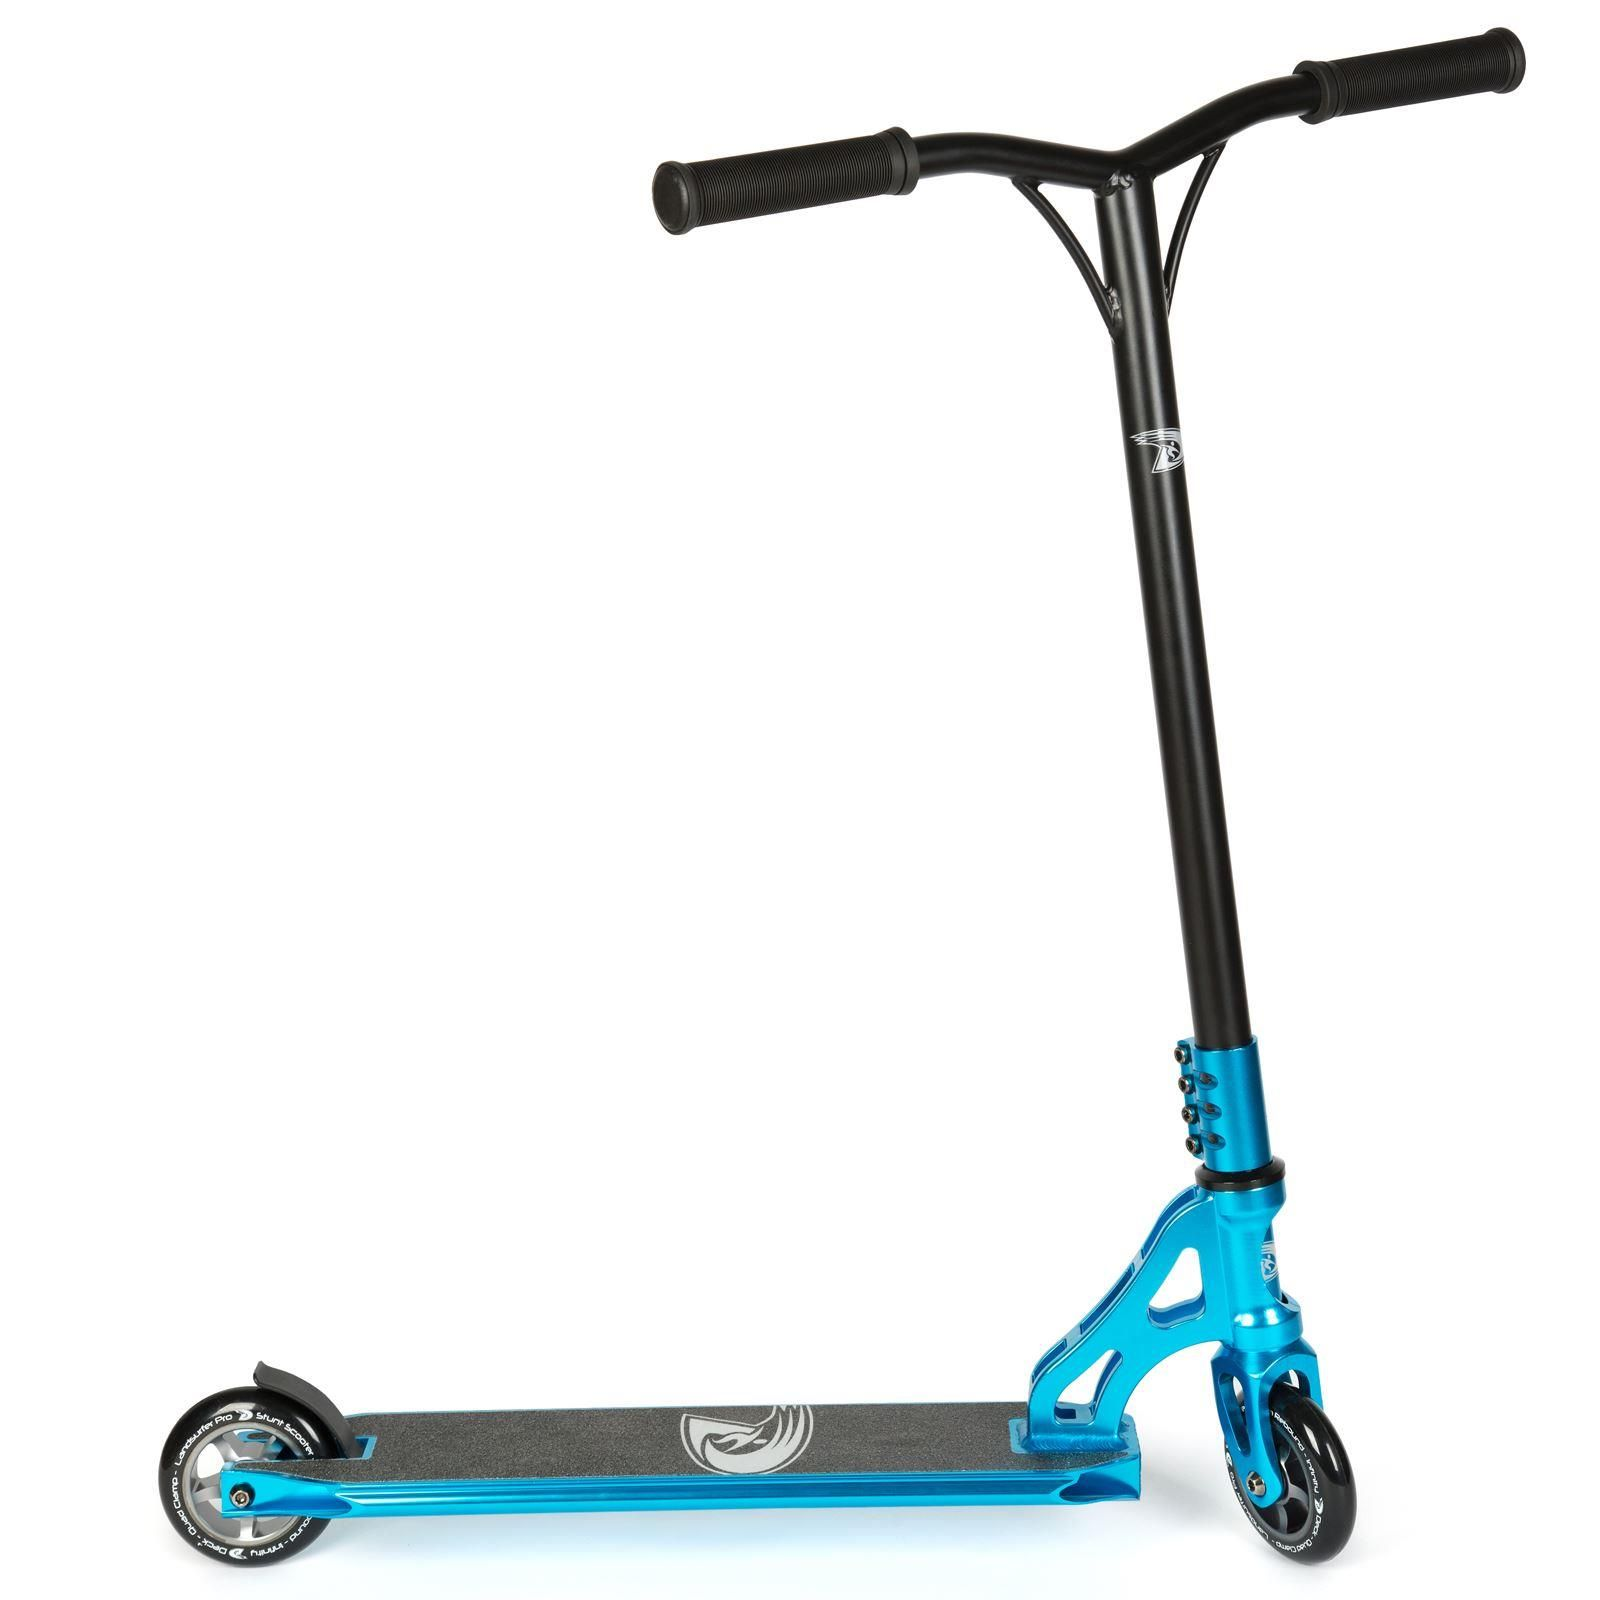 Land Surfer Pro Stunt Scooter Blue